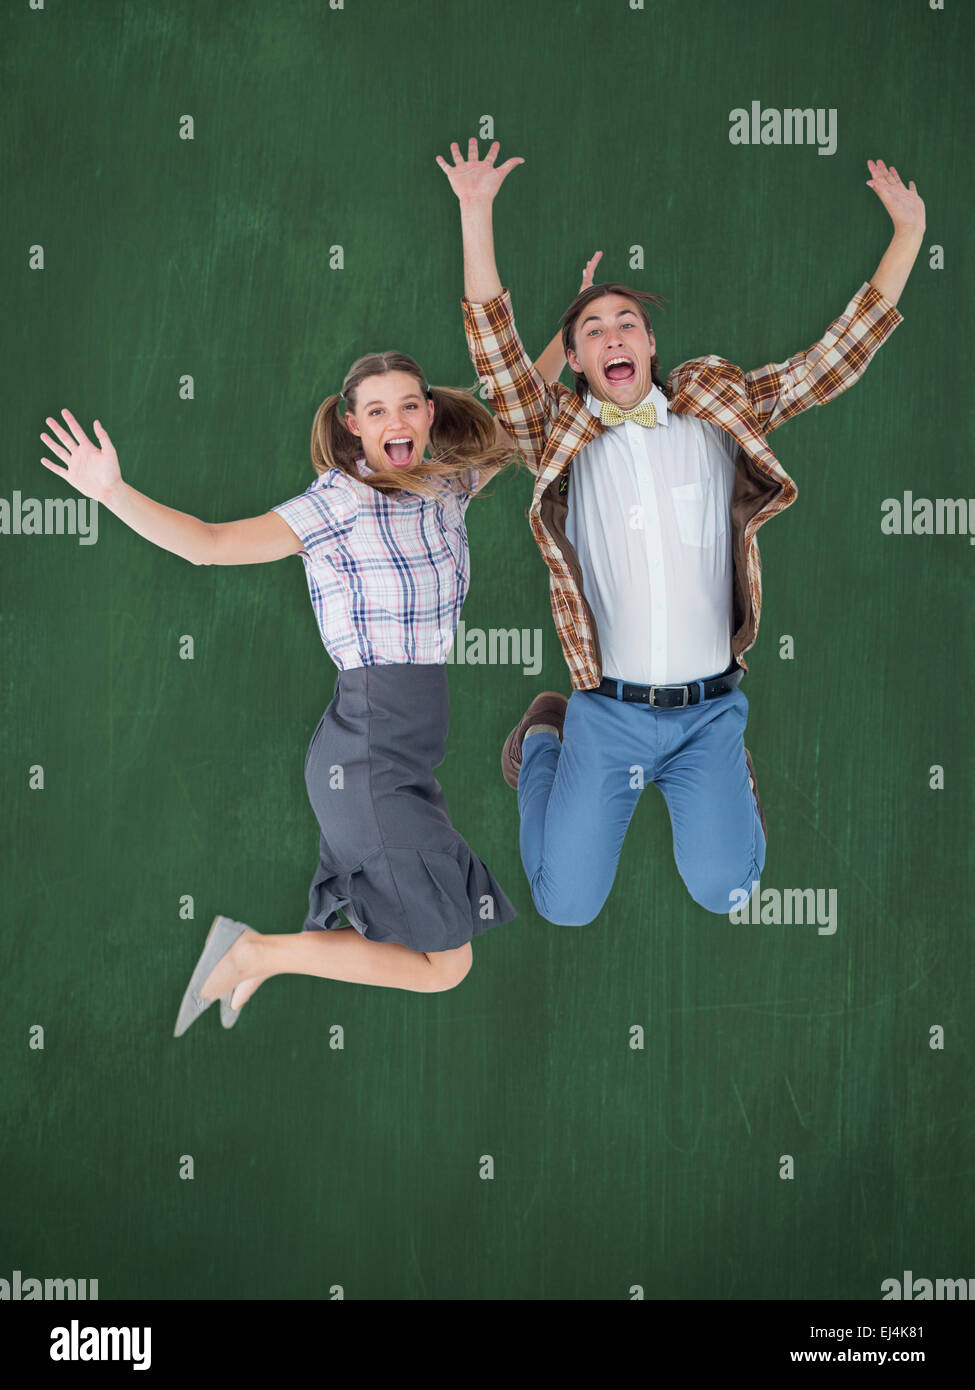 Composite image of geeky hipsters jumping and smiling - Stock Image